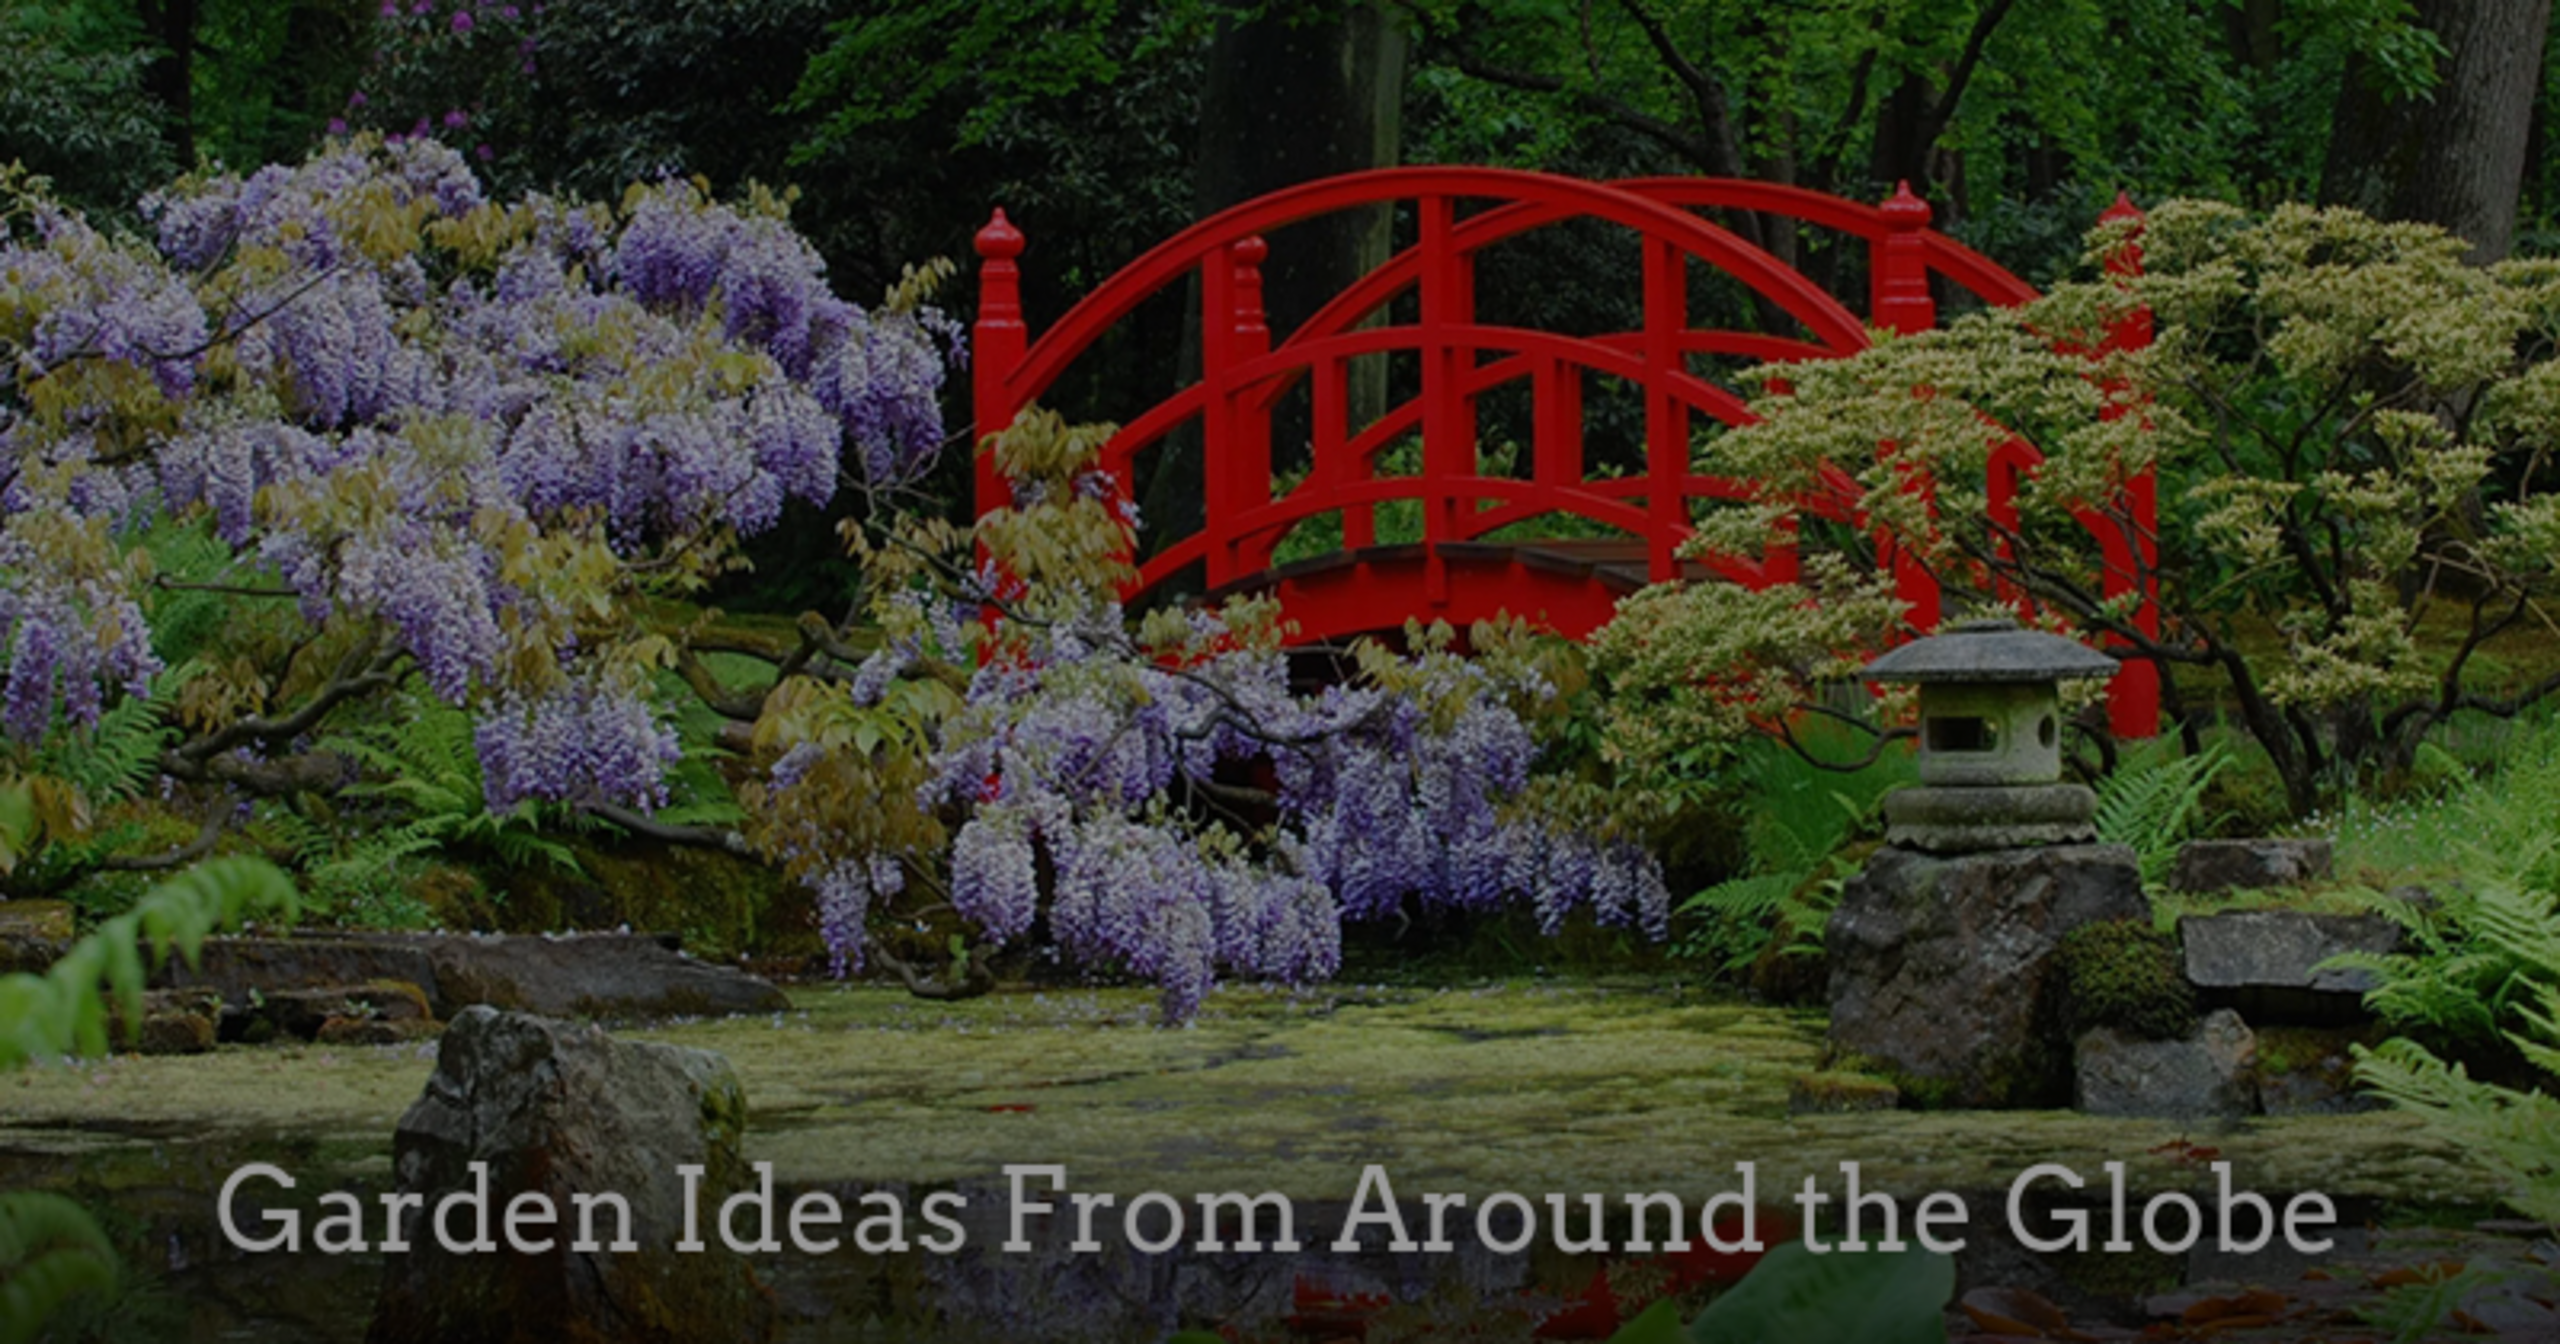 Garden Ideas From Around the Globe